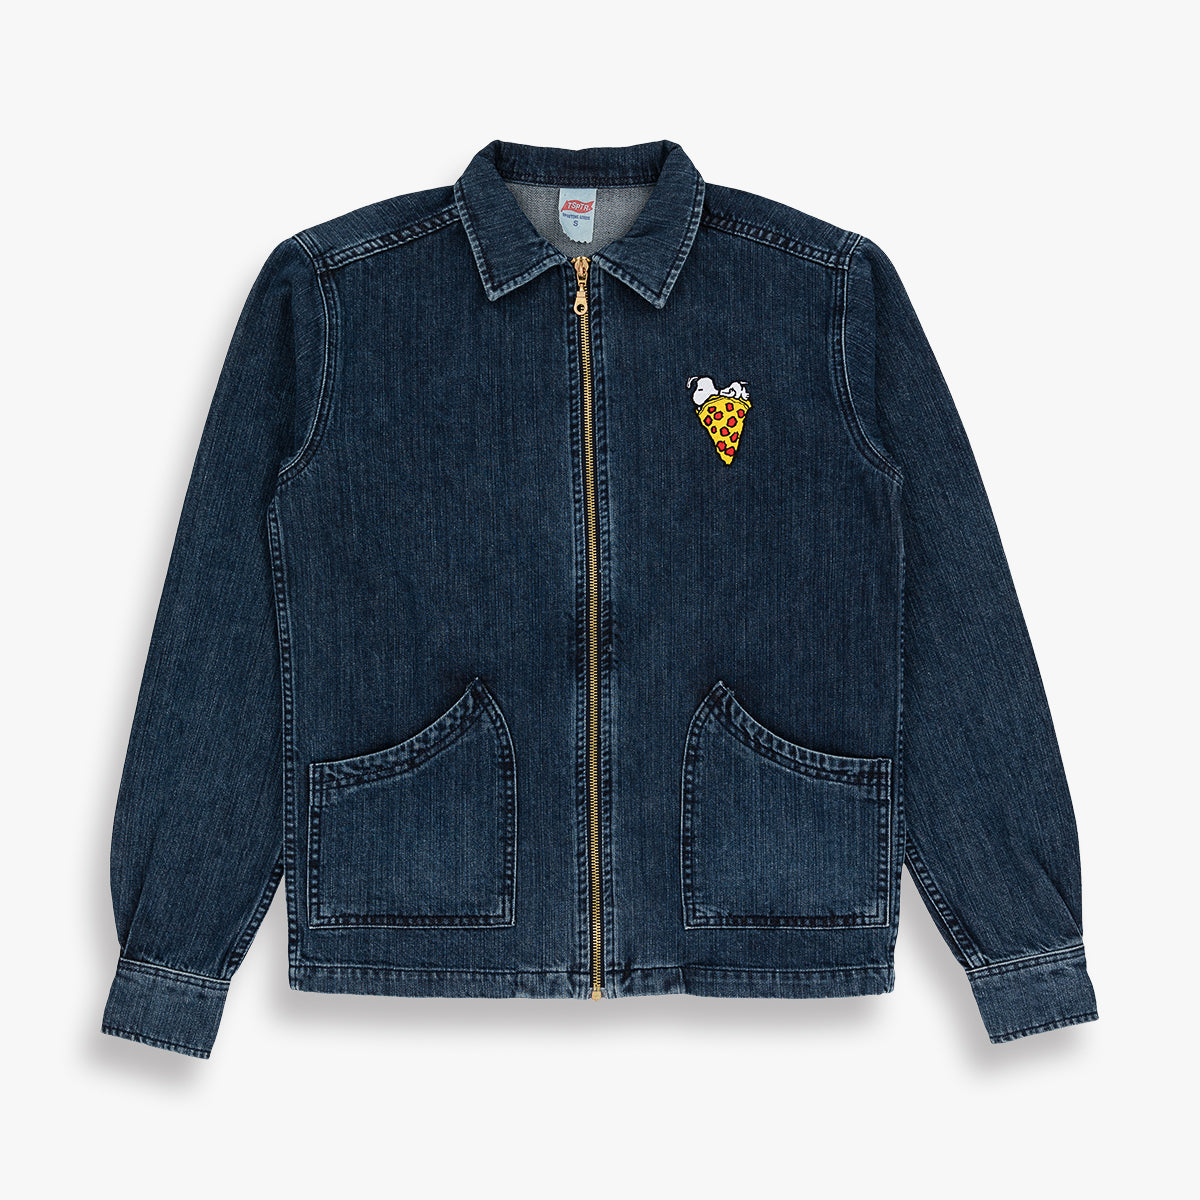 SNOOPY PIZZA DENIM JACKET